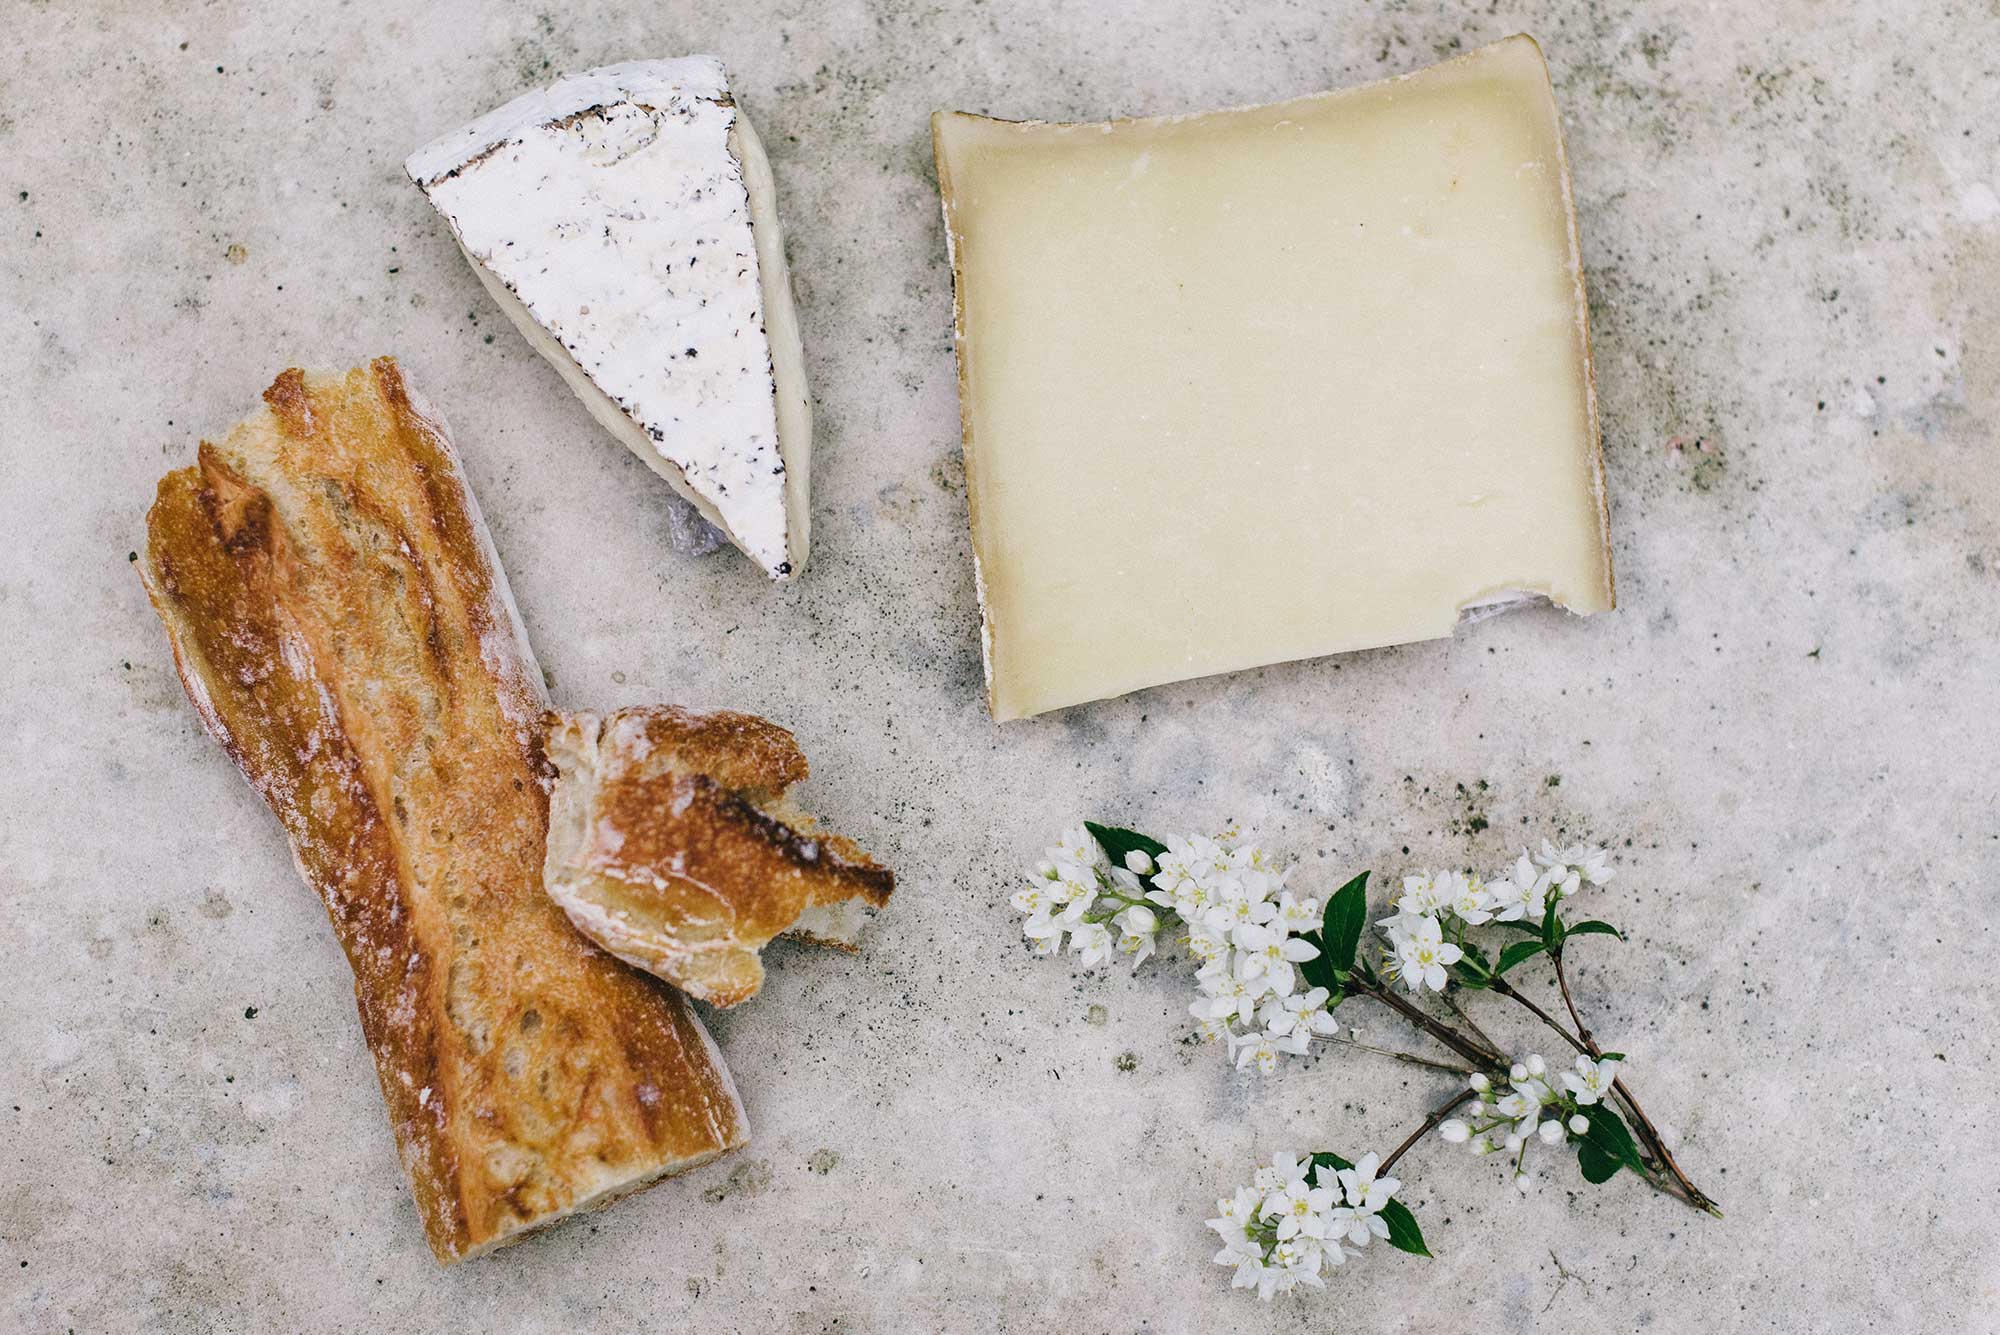 Beautiful cheeses and a crusty loaf of bread